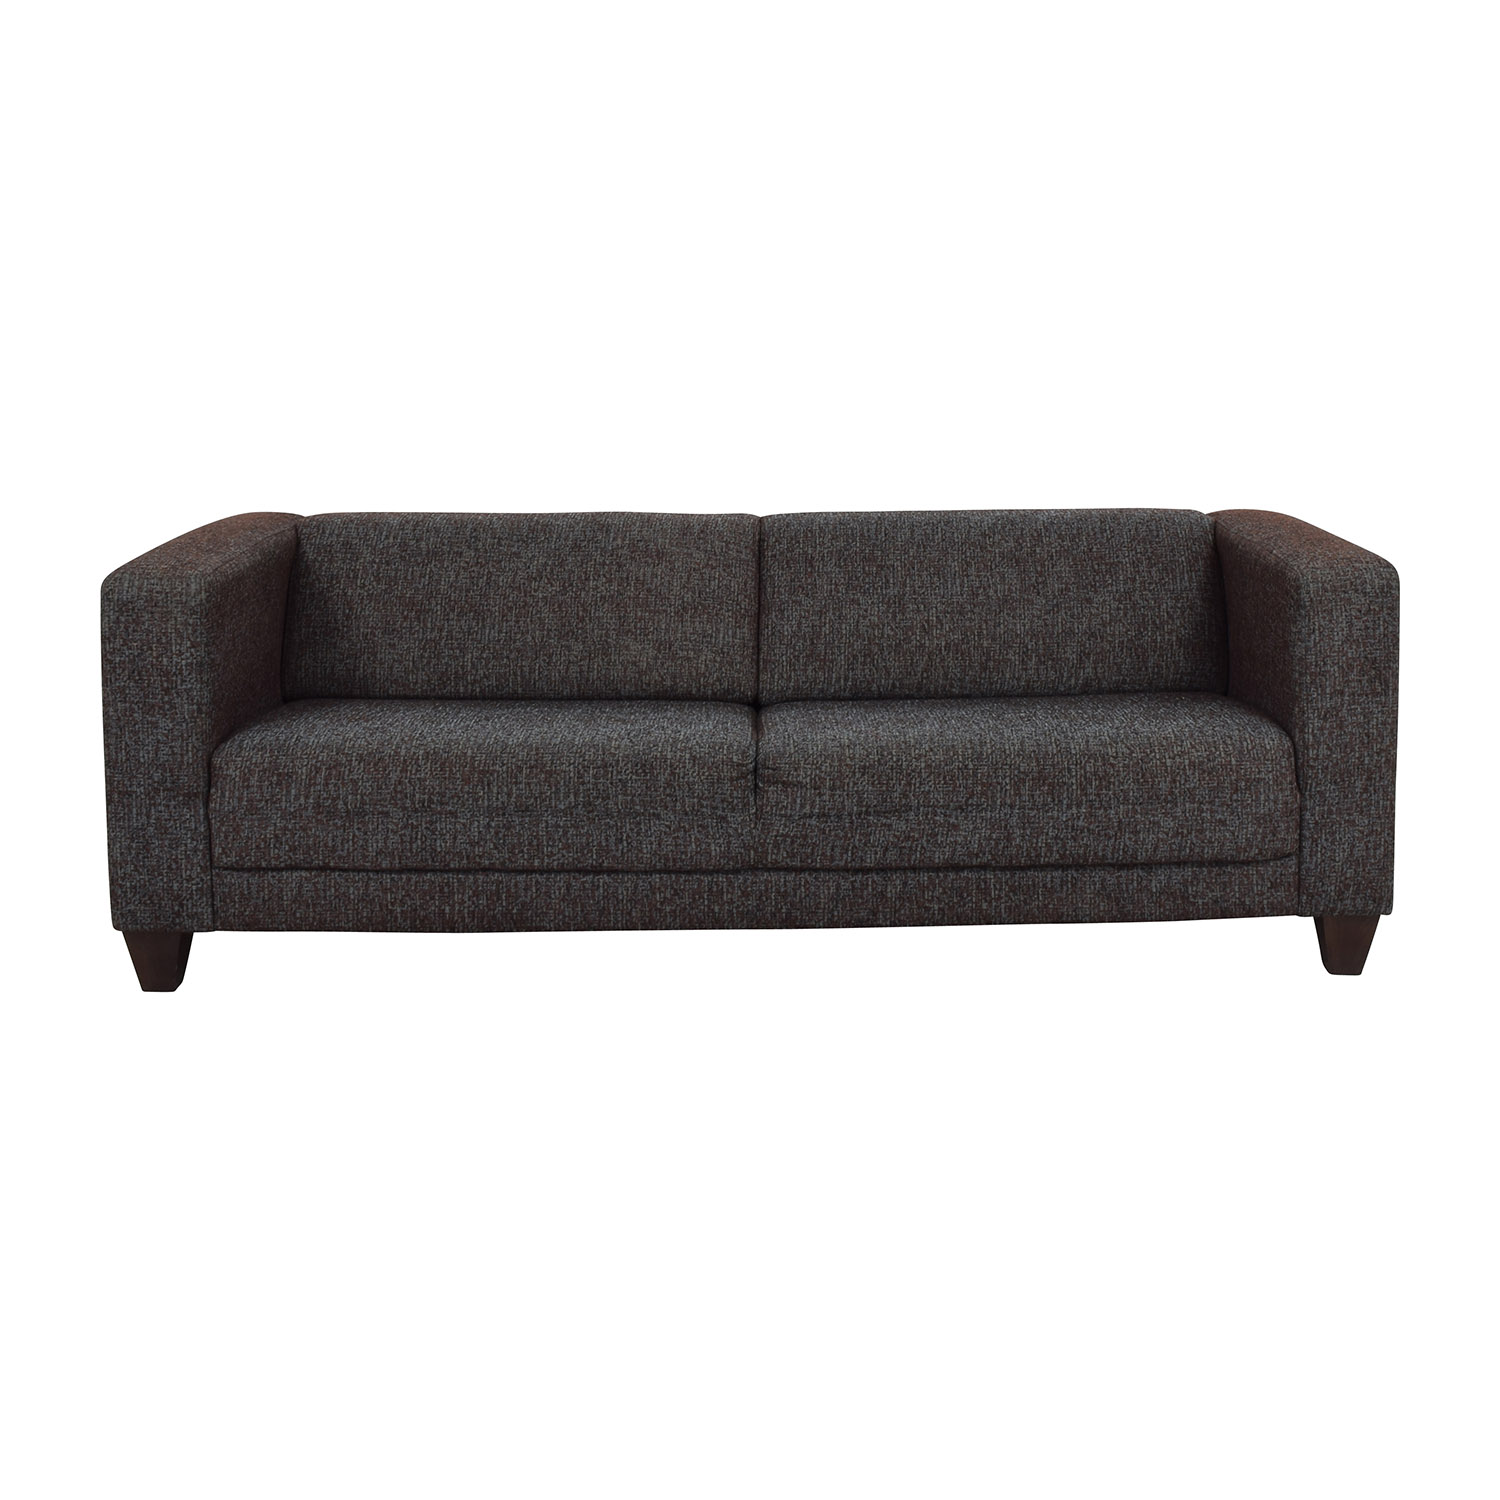 Stella Sofa Dimensions Sofa The Honoroak